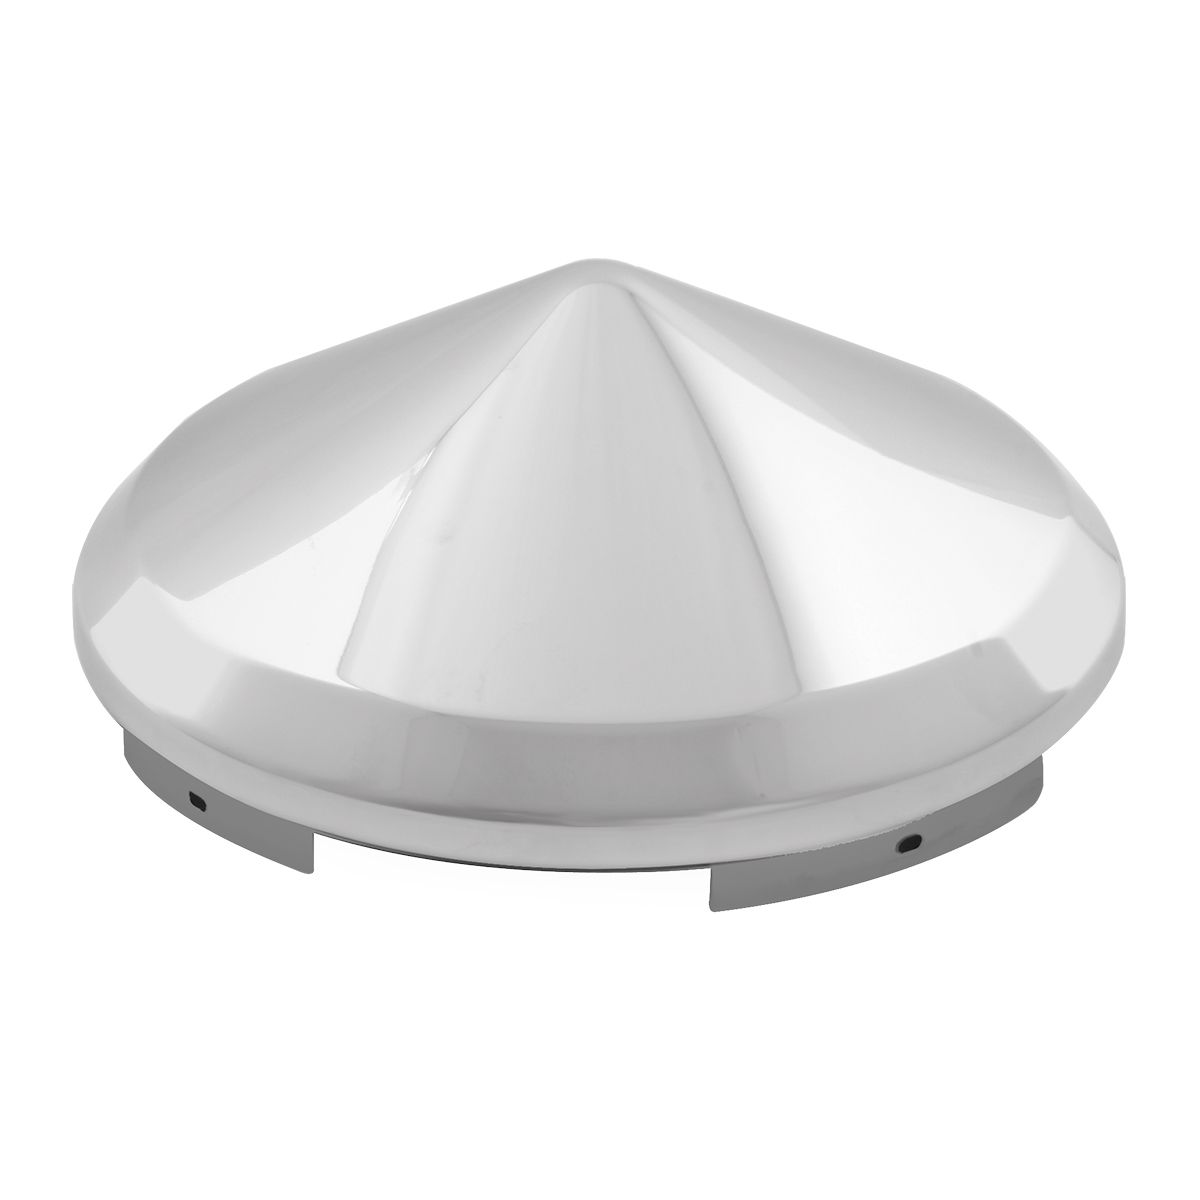 10700/10702 Universal Front Hub Cap in Cone Shape